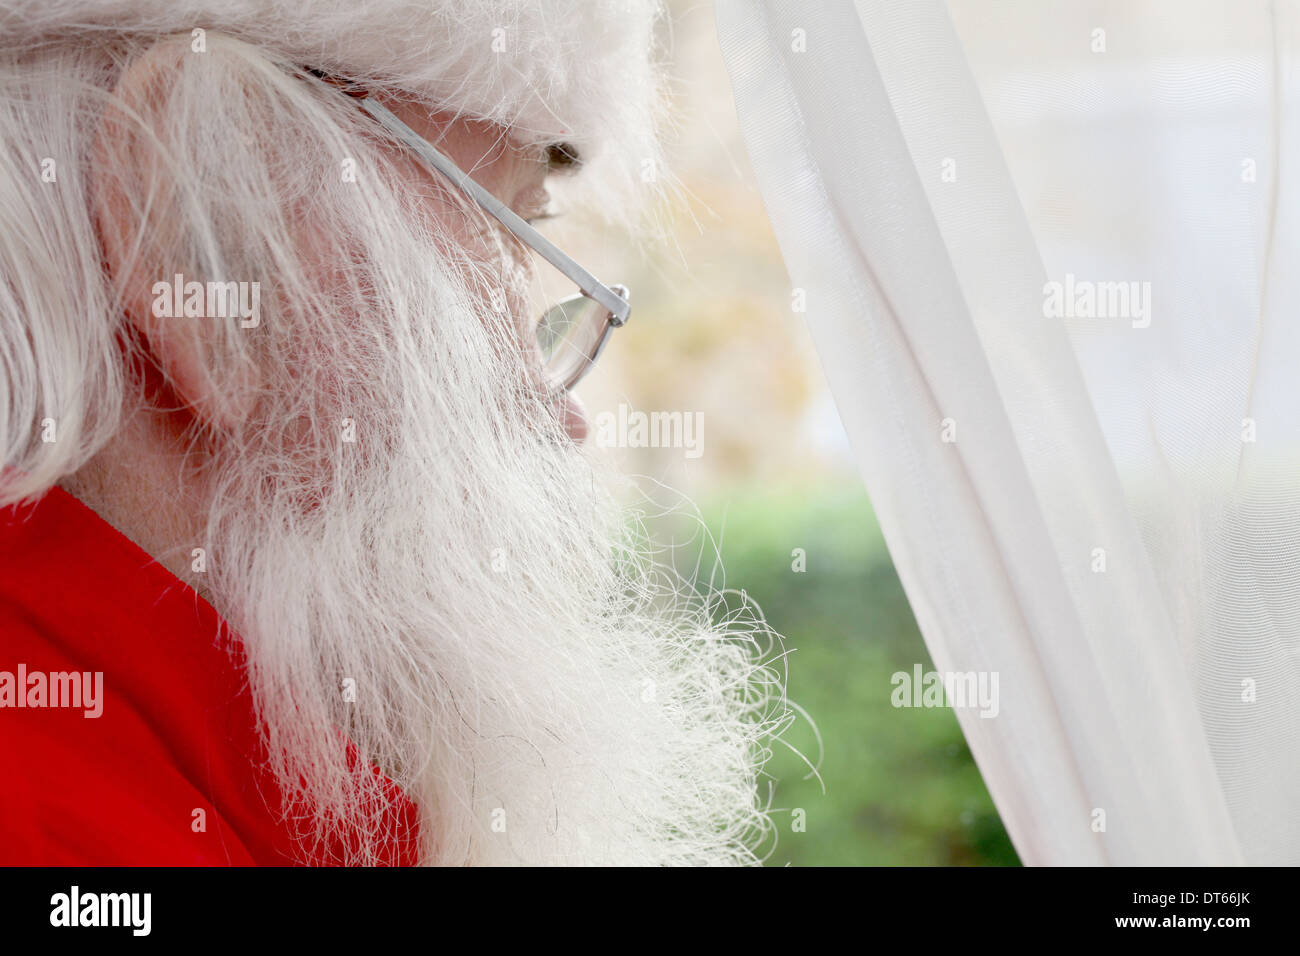 Santa Claus looking out of window - Stock Image